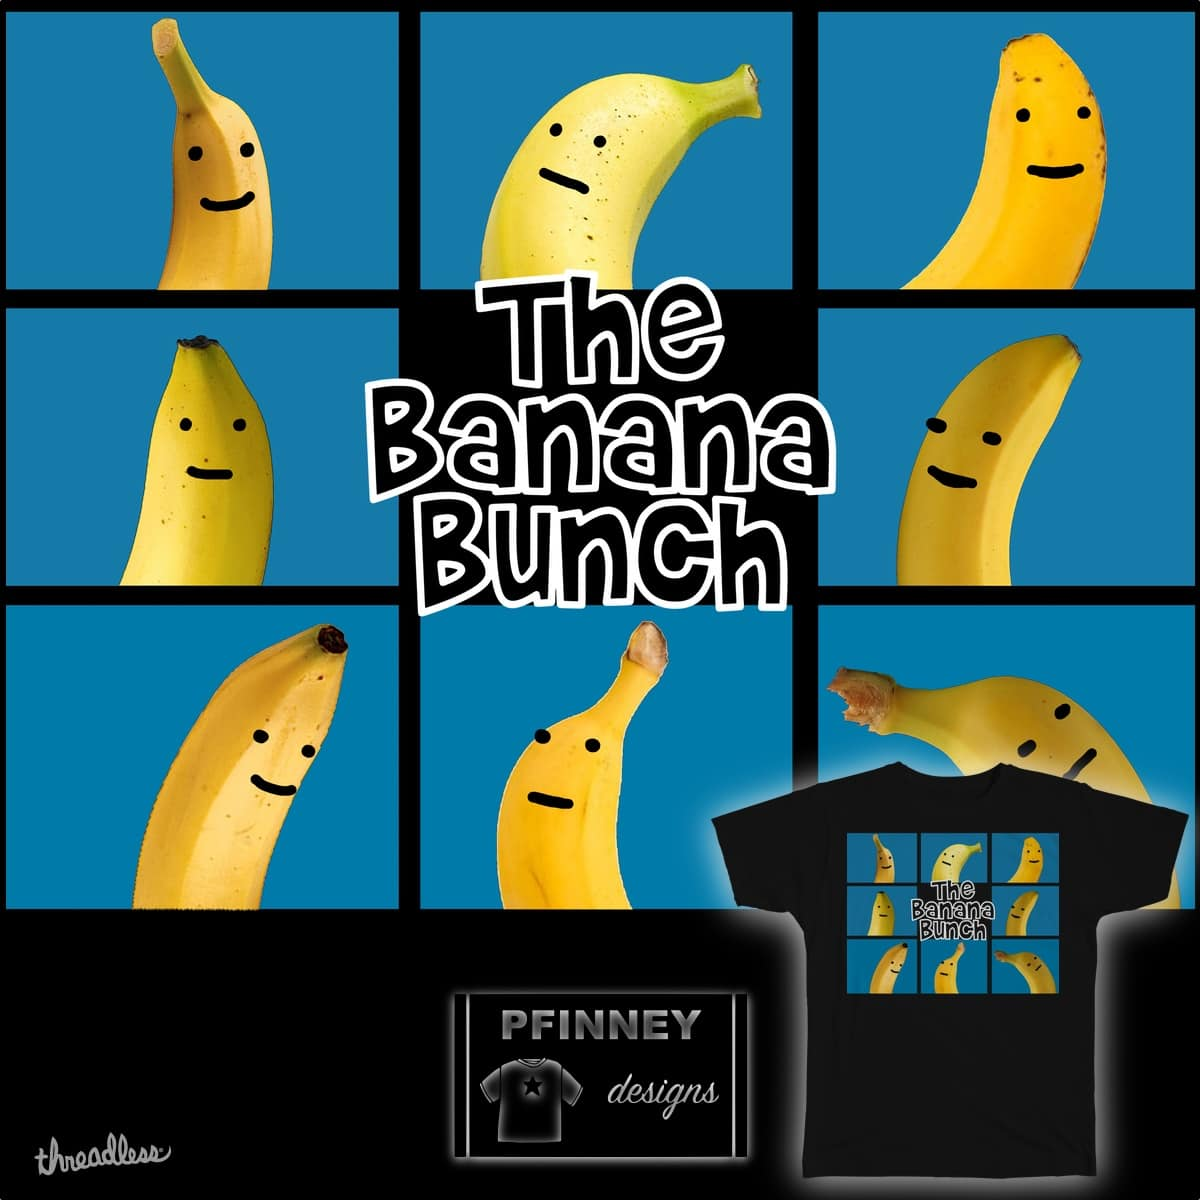 The Banana Bunch by PFinney on Threadless